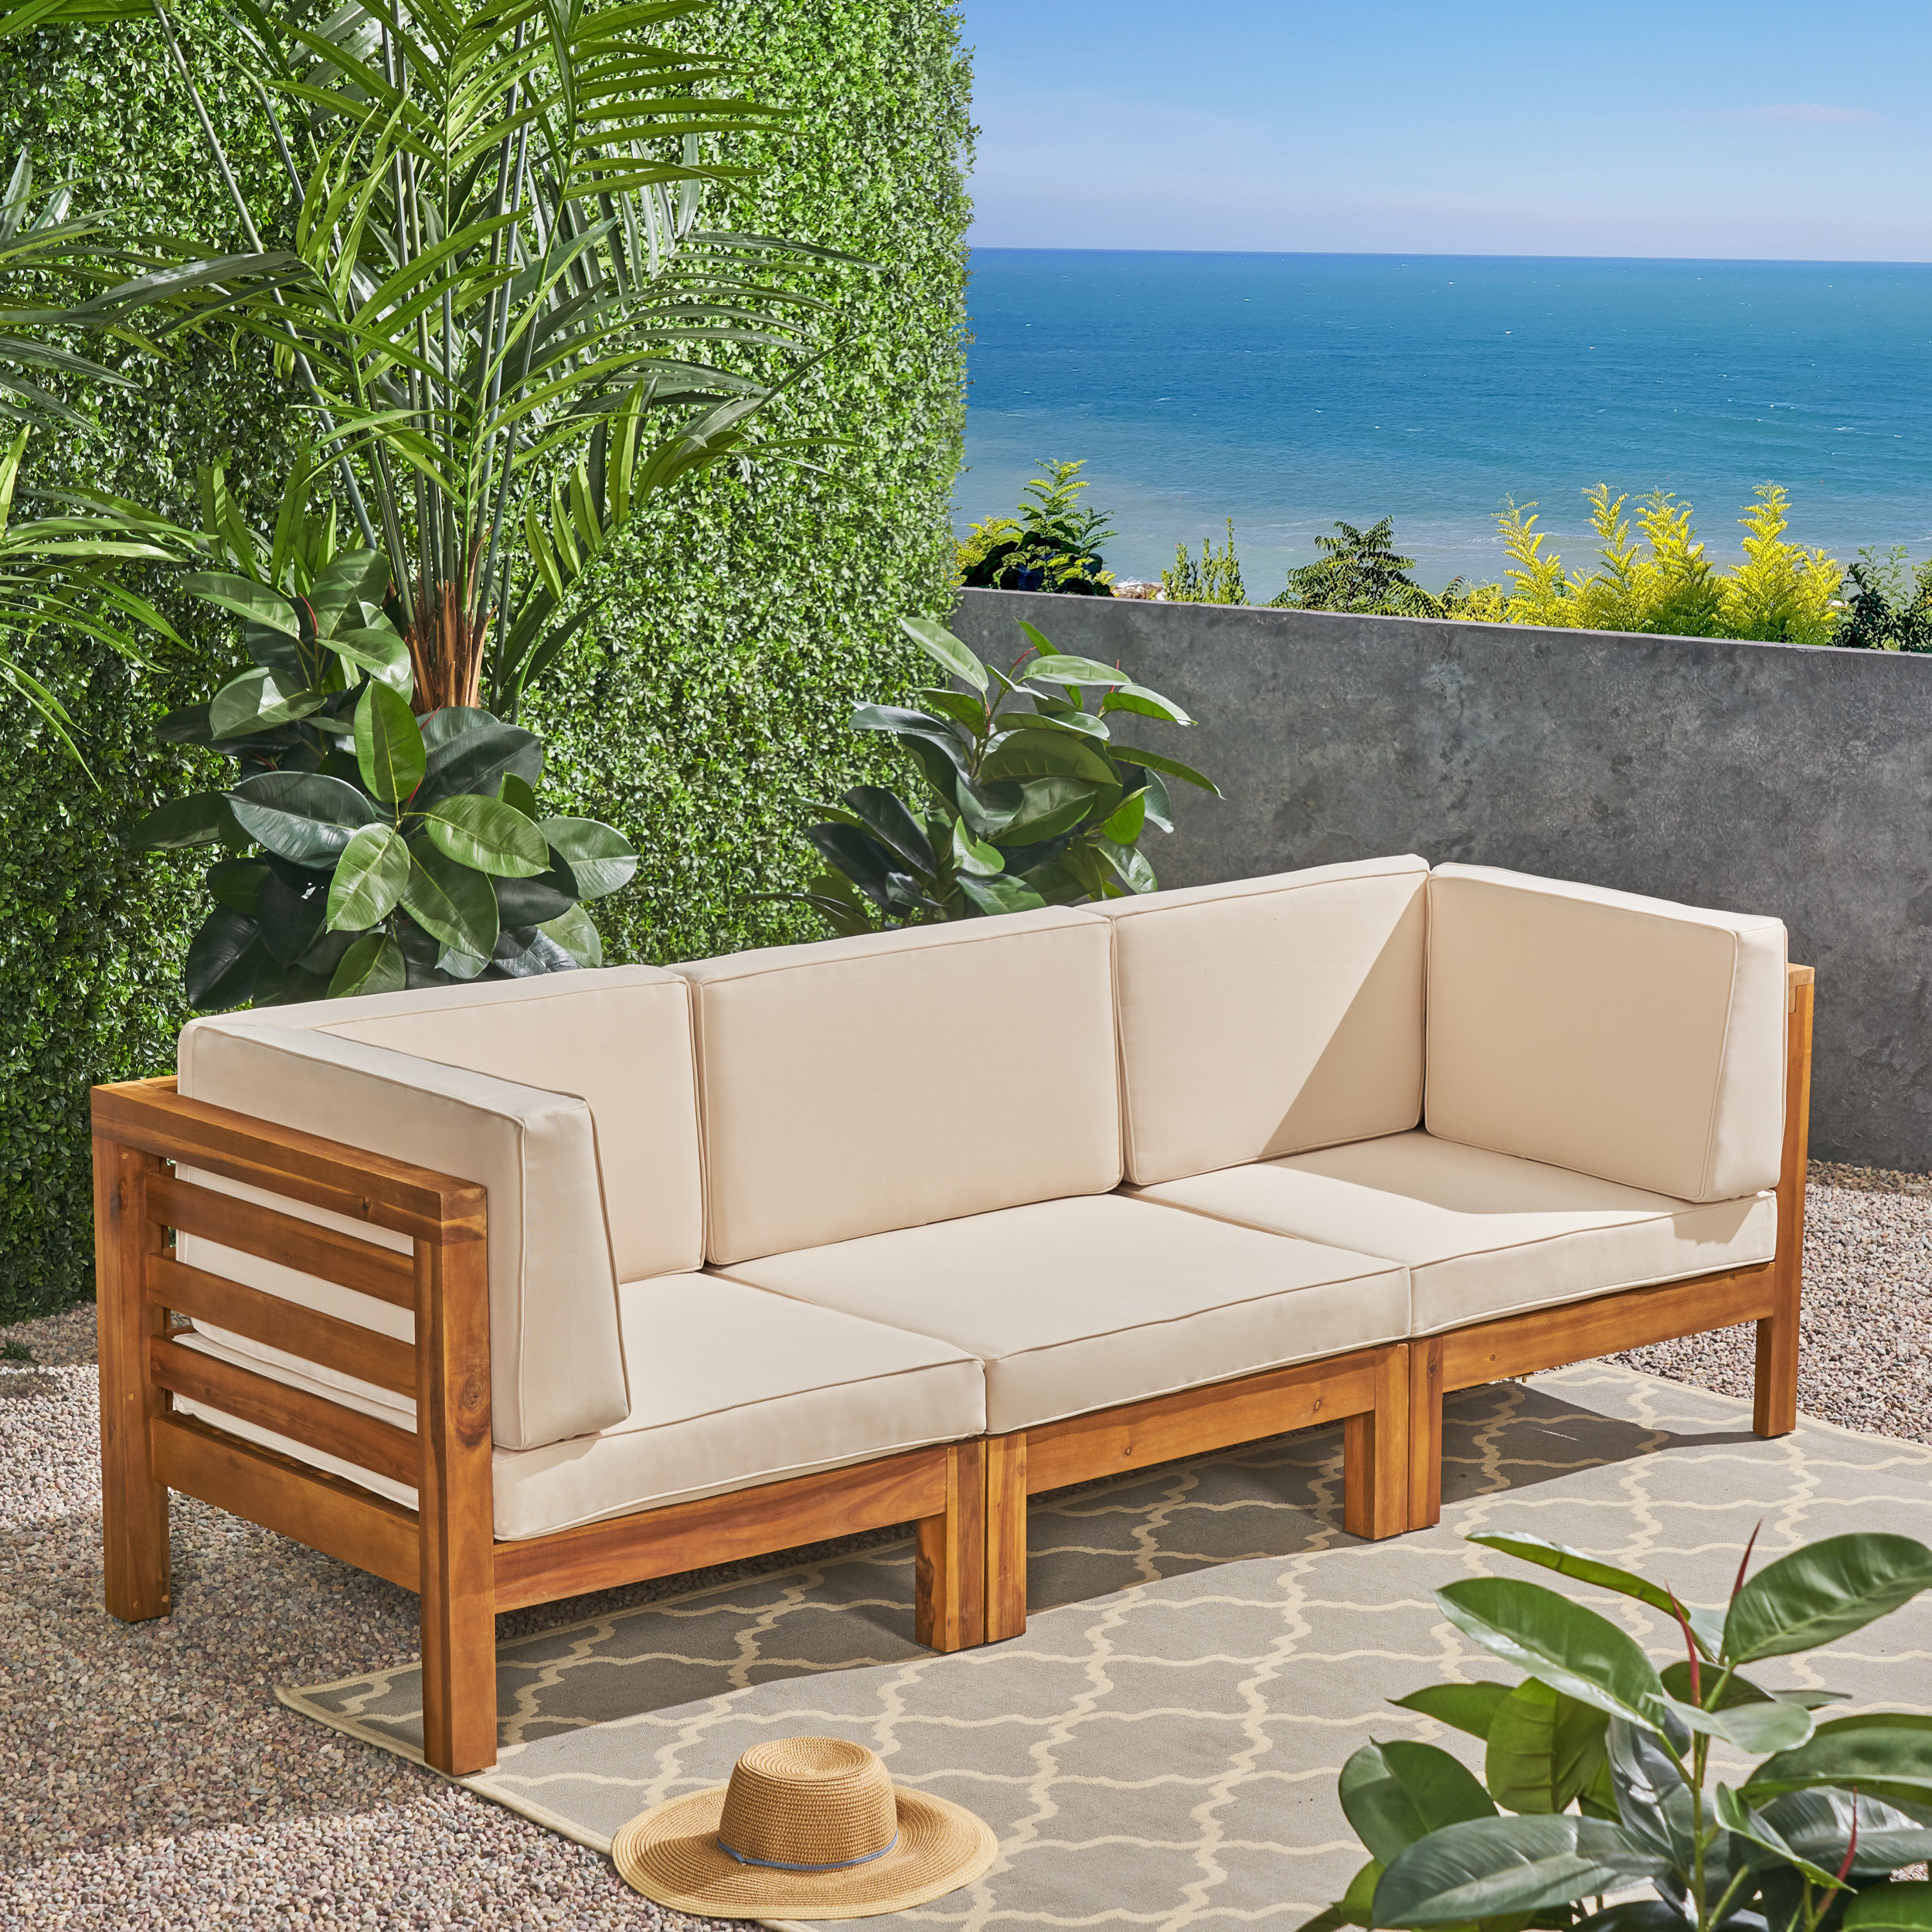 Famous Hursey Patio Sofas In Brayden Studio Seaham Teak Patio Sofa With Cushions (View 12 of 20)